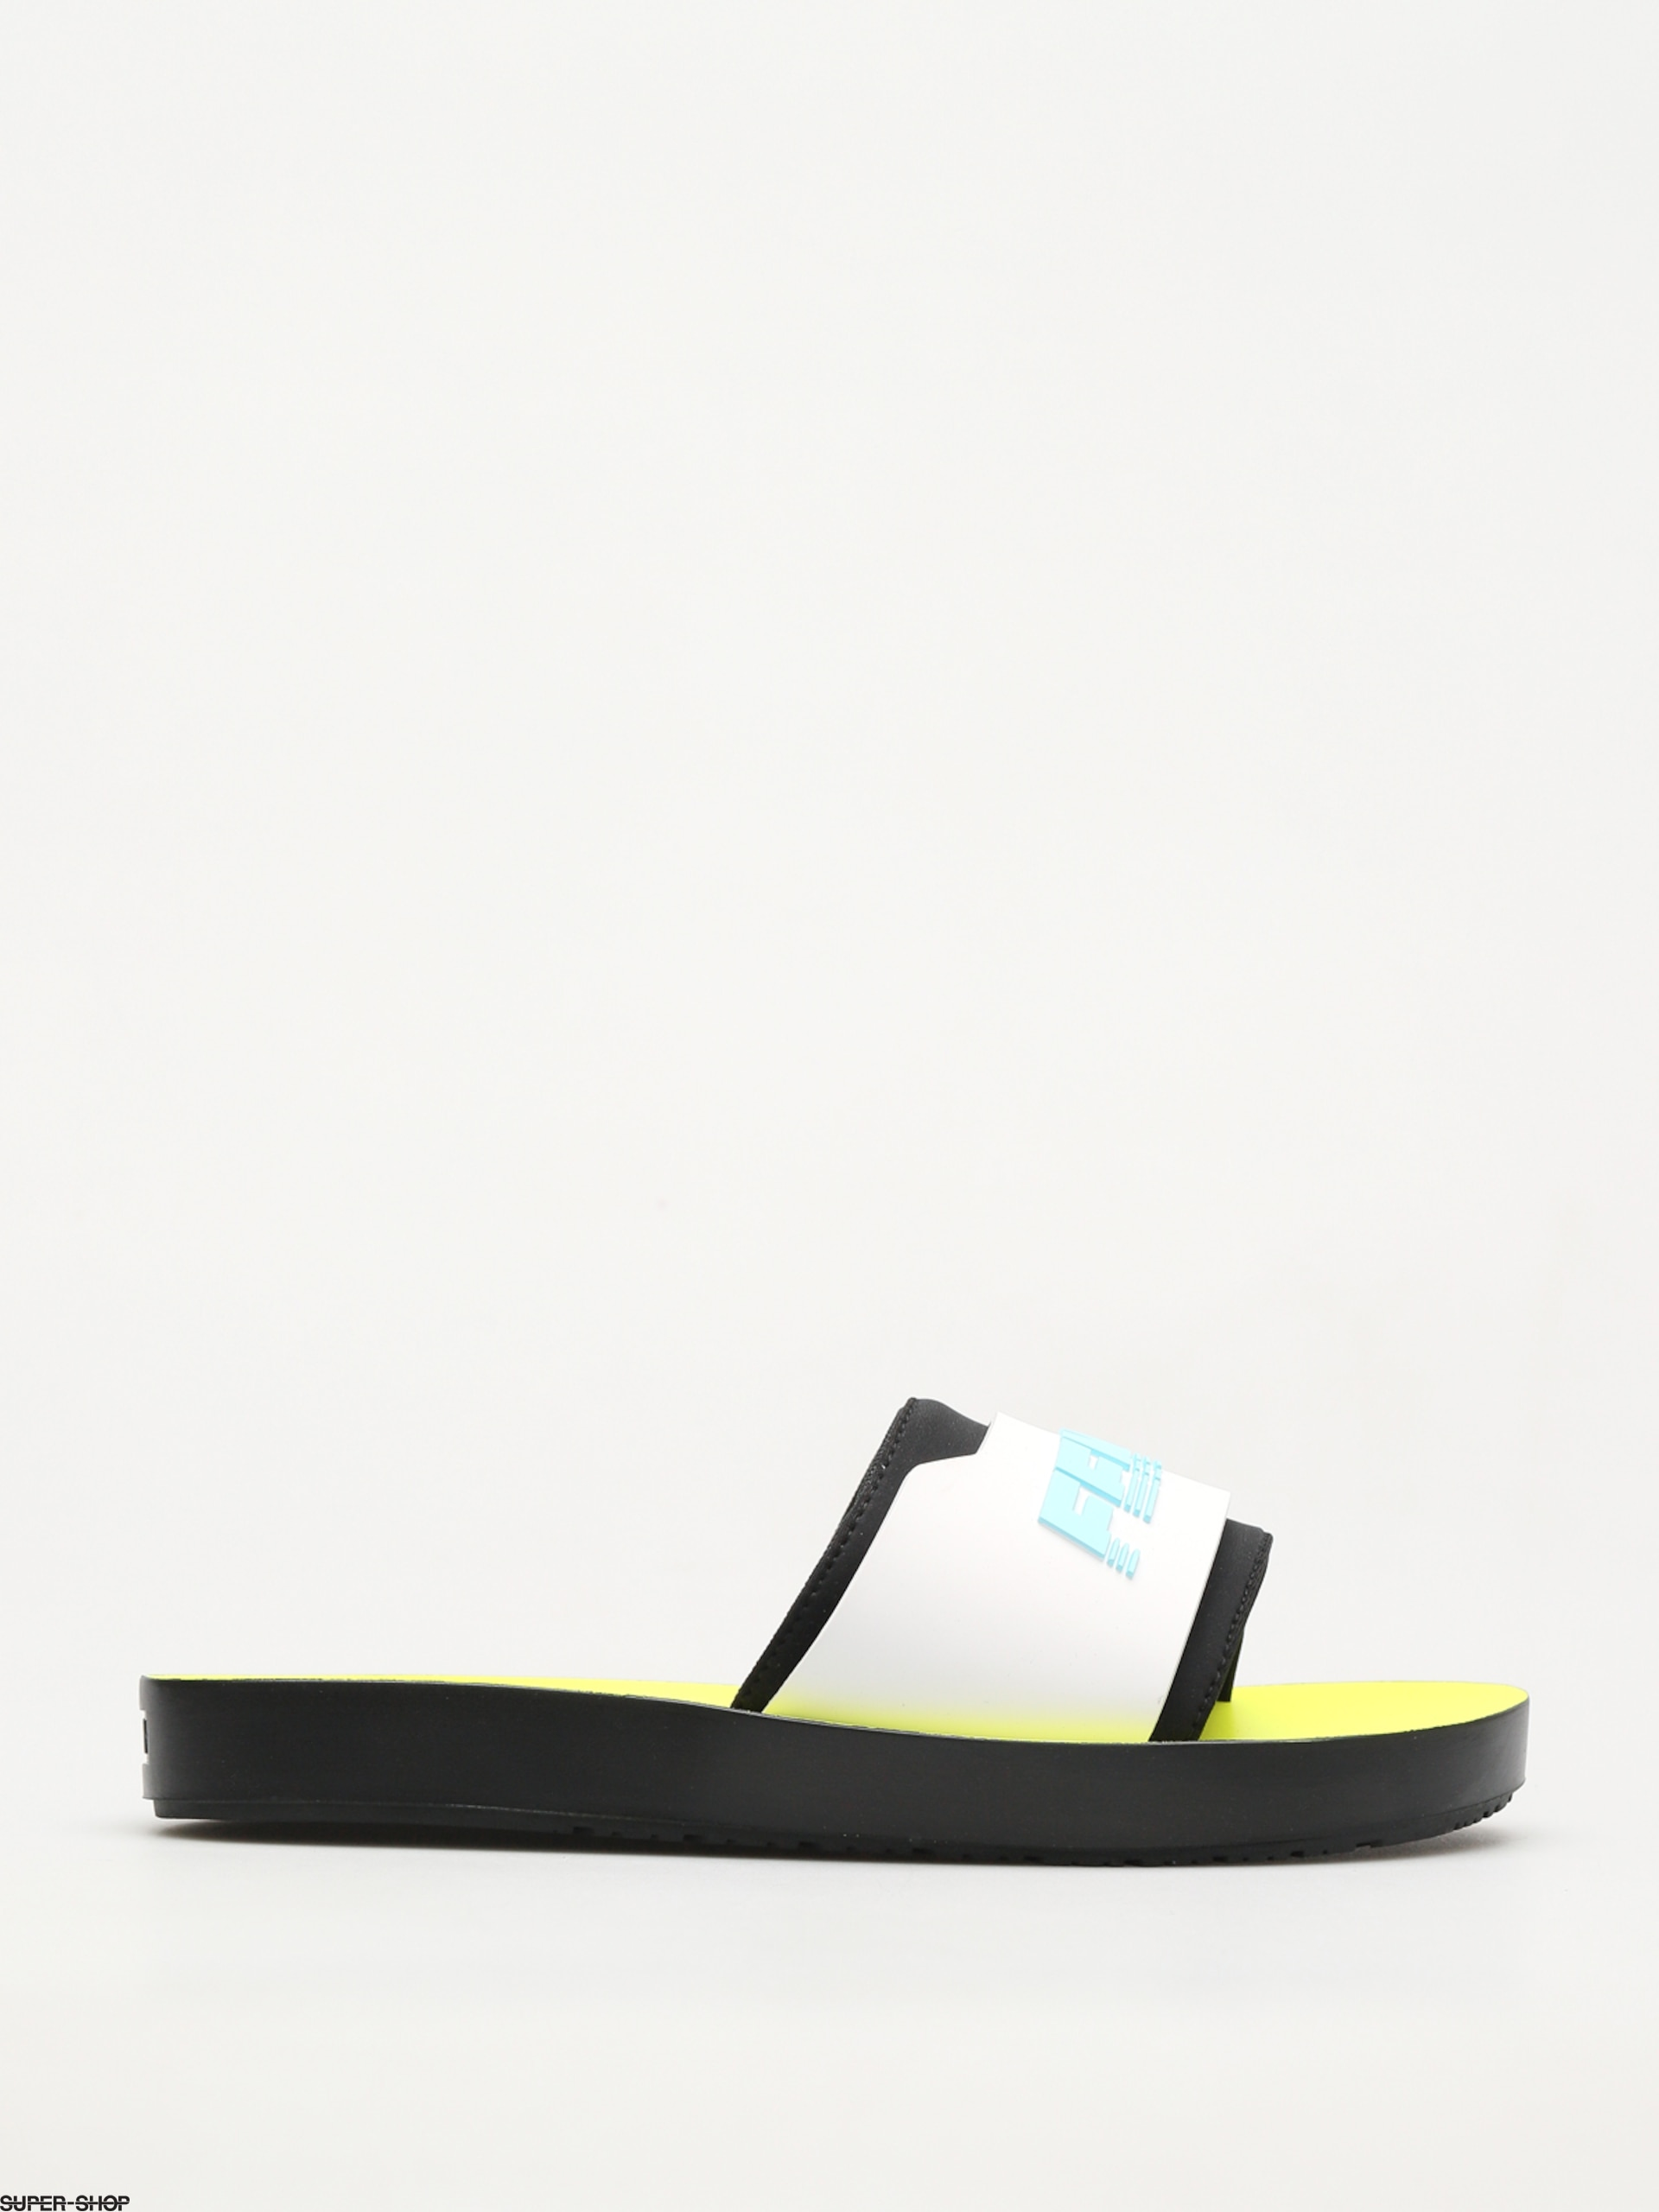 7f9742f28 975678-w1920-puma-flipflops-fenty-surf-slide-wmn-puma-black-white-yellow.jpg